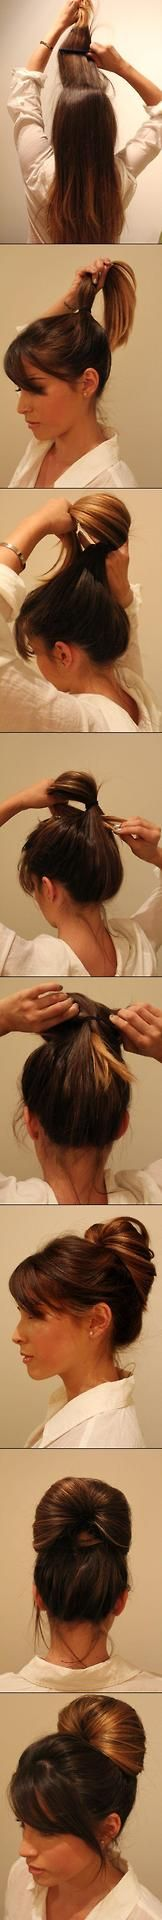 This is such a cute simple style that you can do before rushing out the door! If you have longer hair like me it might take a bit of practice first though.